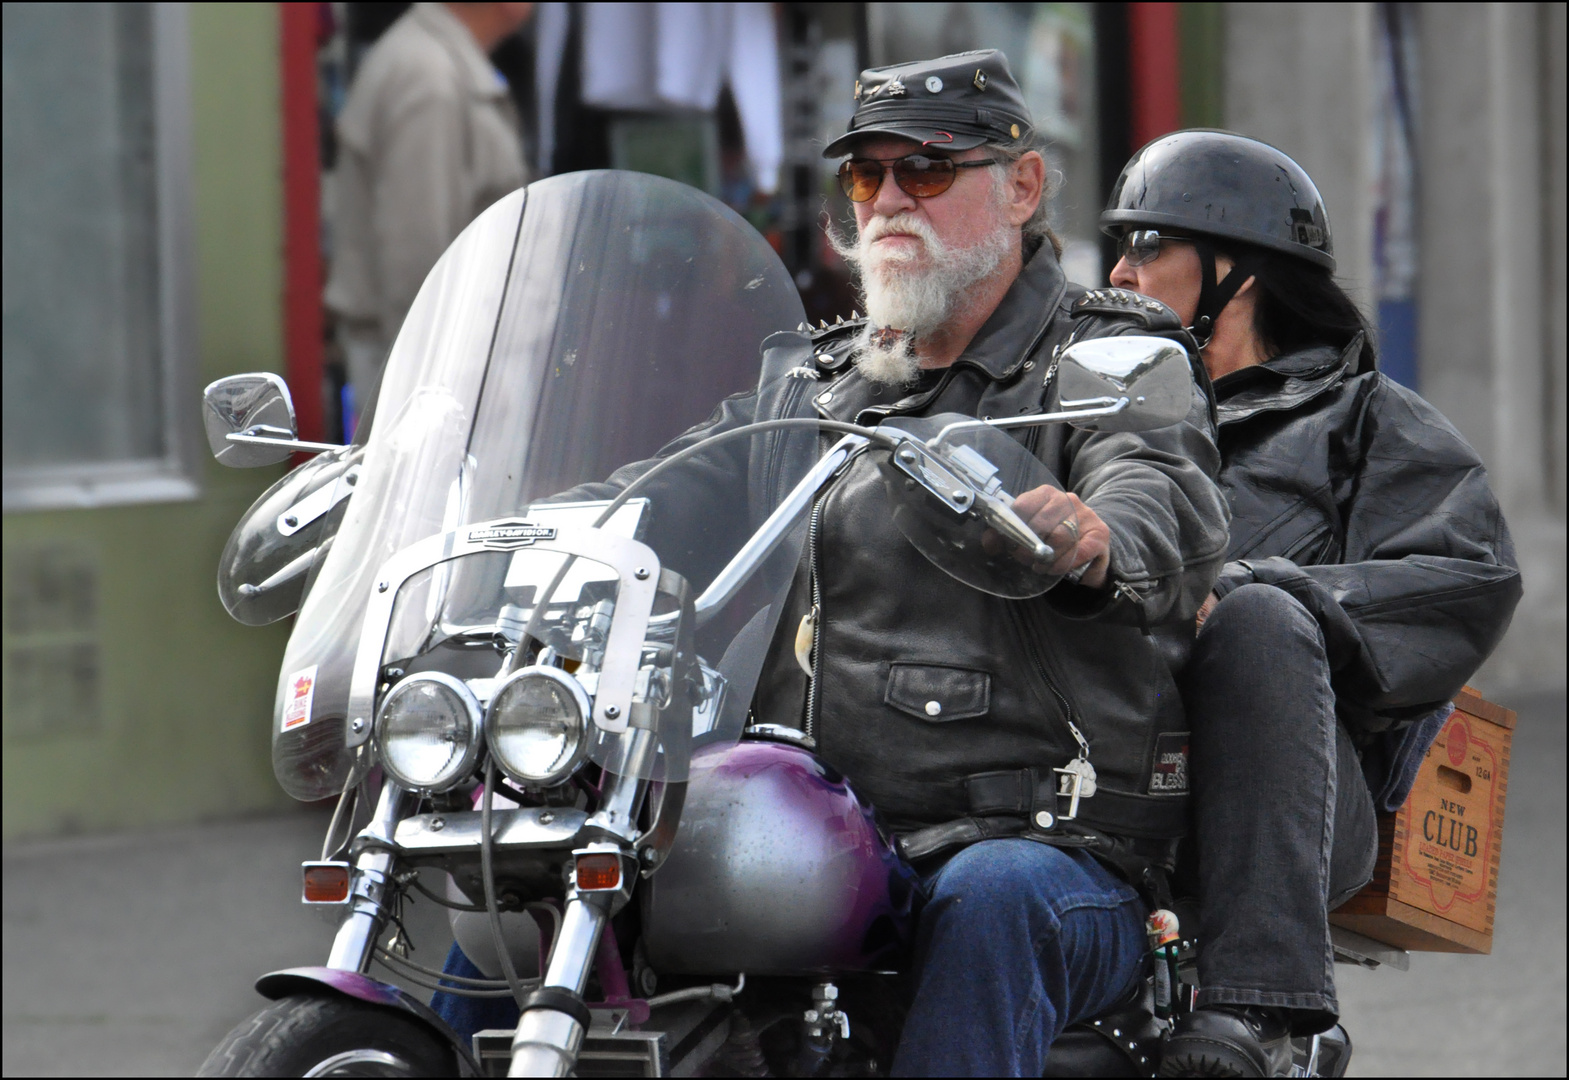 """Harley Riding with """"New Club"""""""